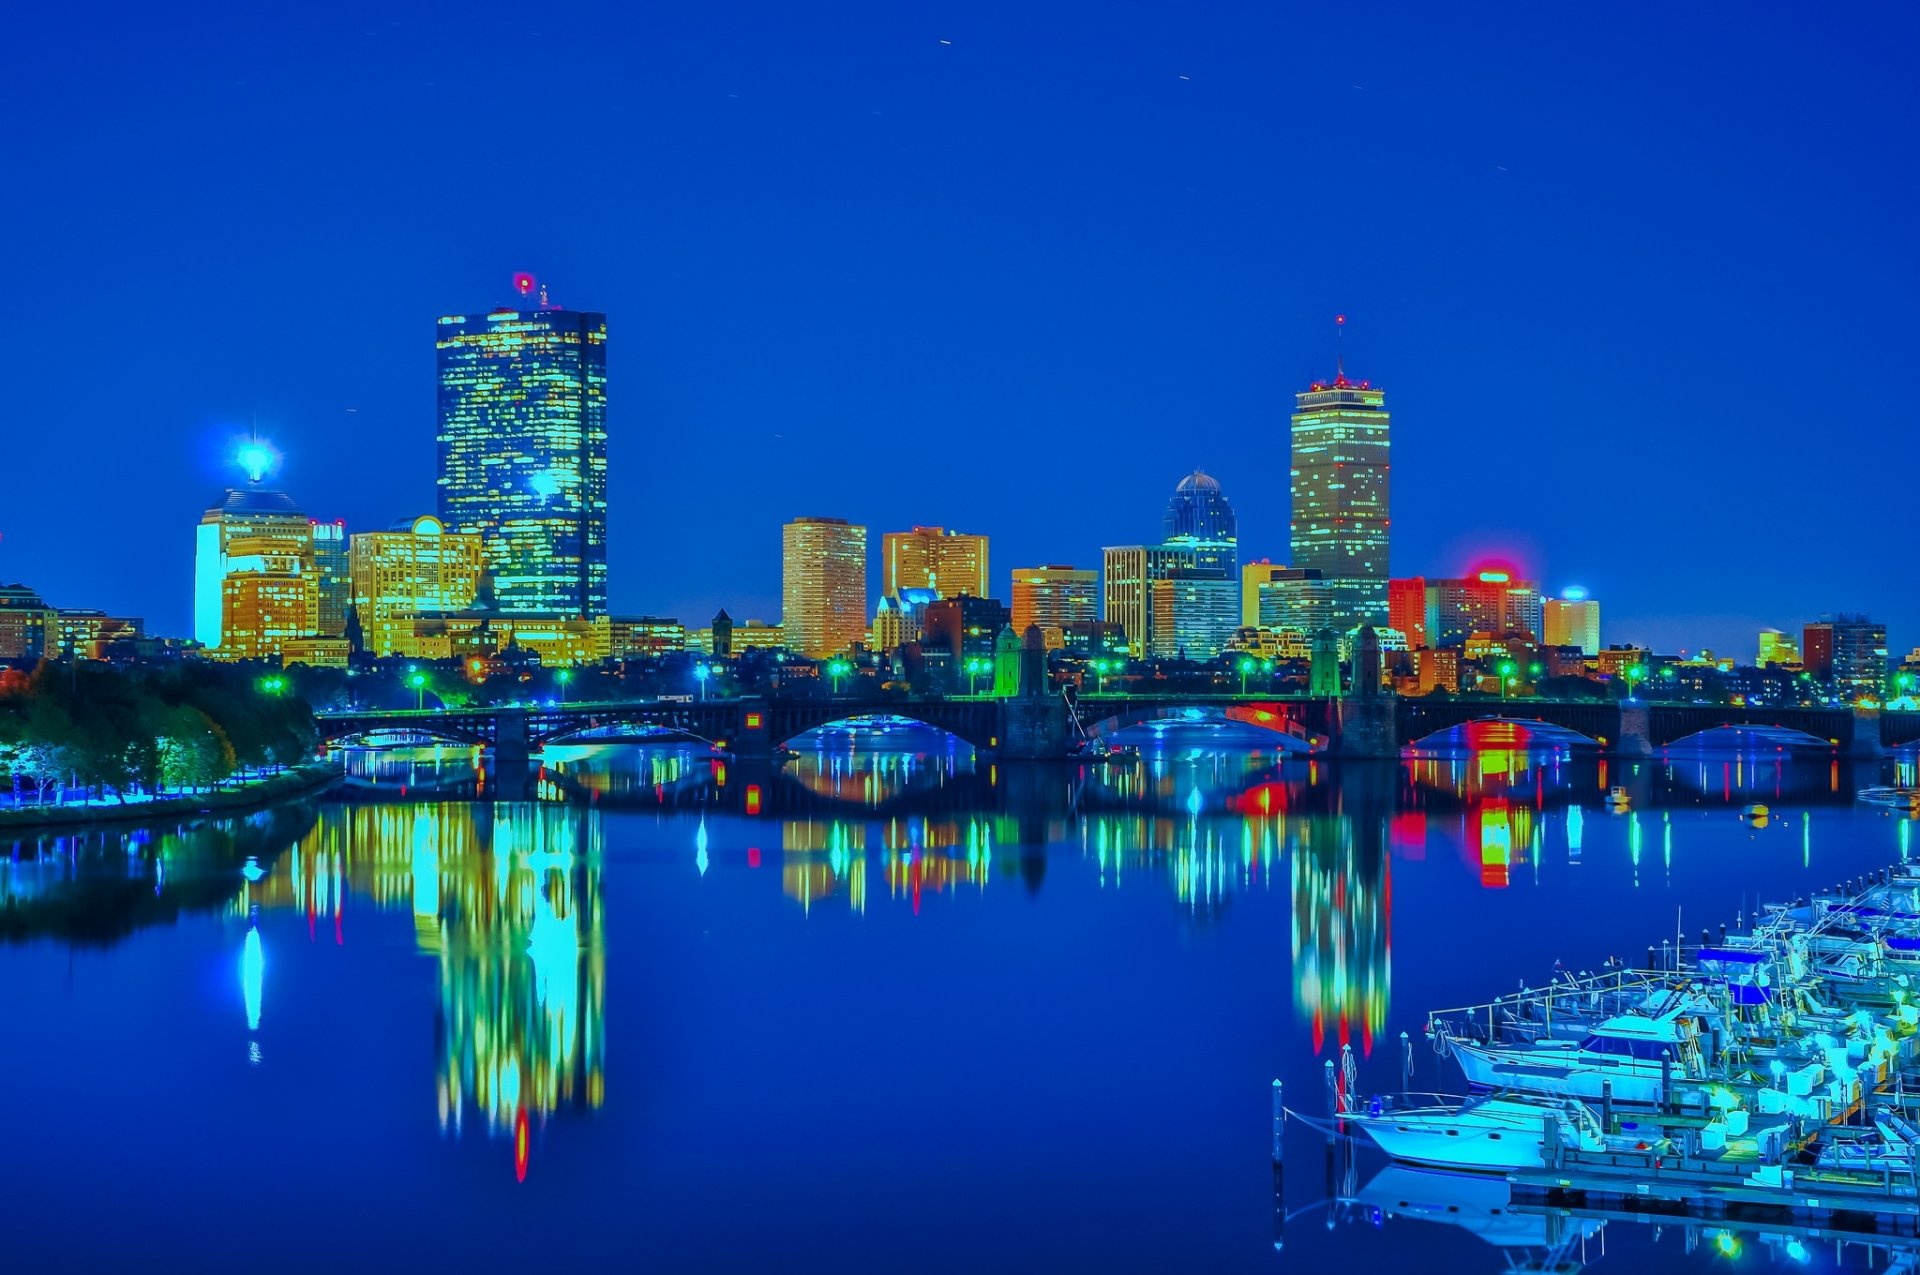 Man Made - Boston  Night City USA Reflection Building Skyscraper Wallpaper